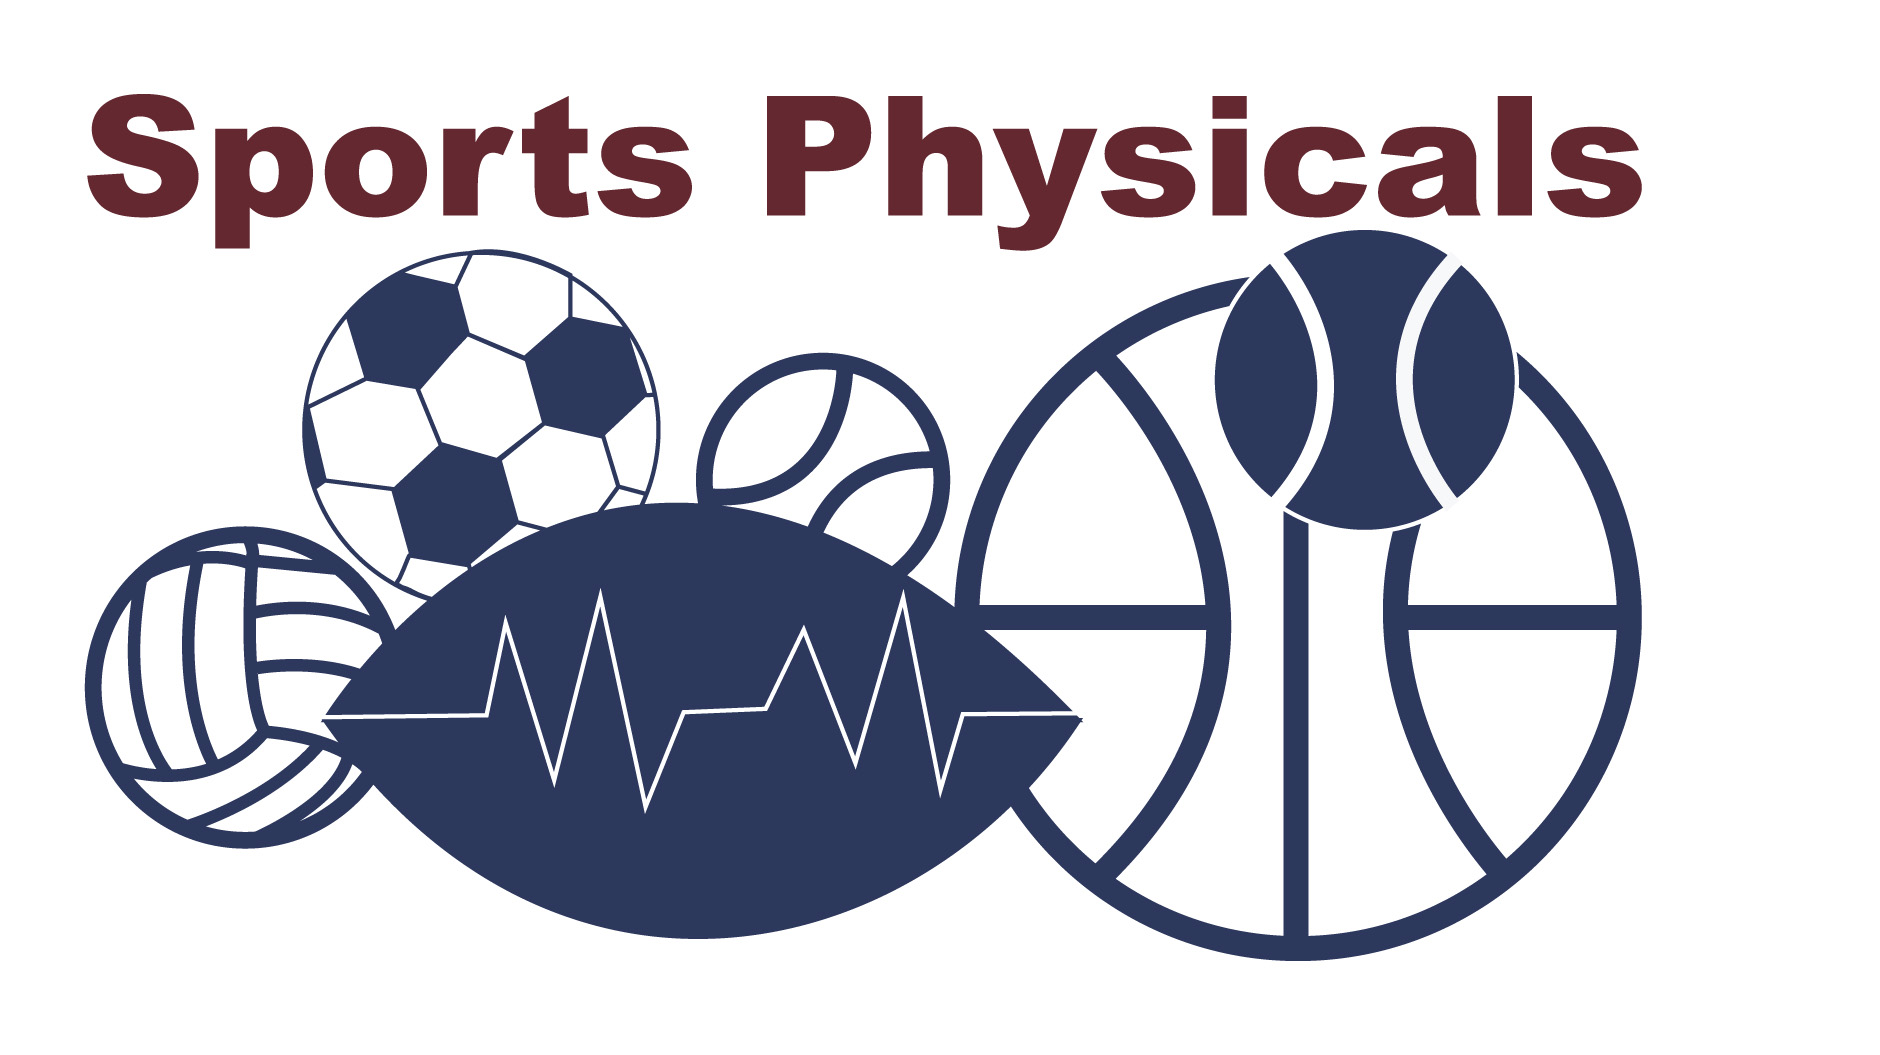 Online Registration for Physicals